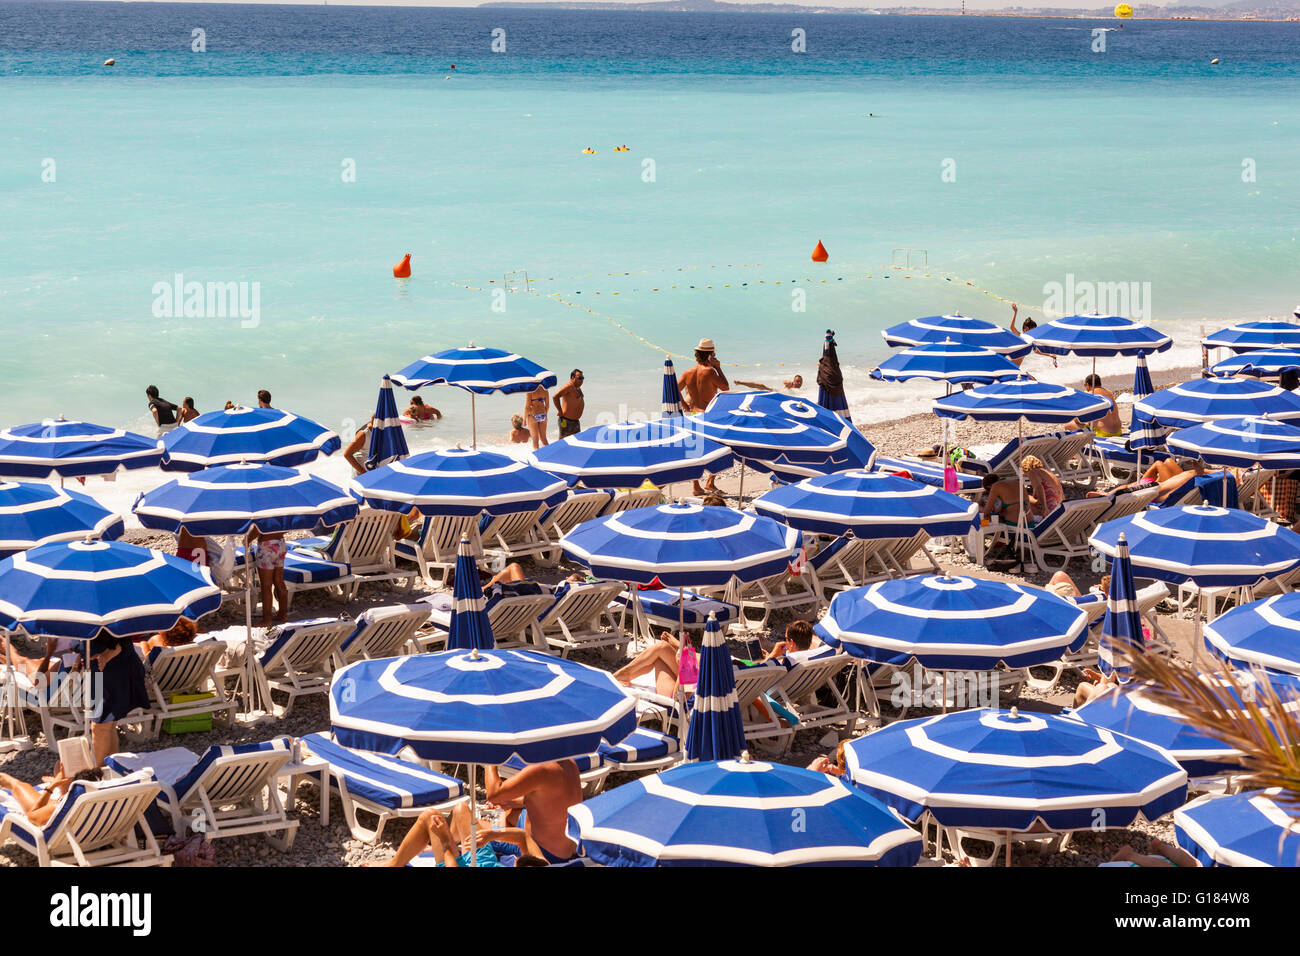 Baie Des Anges and blue sun umbrellas on beach, Nice, Cote D'Azur, France - Stock Image